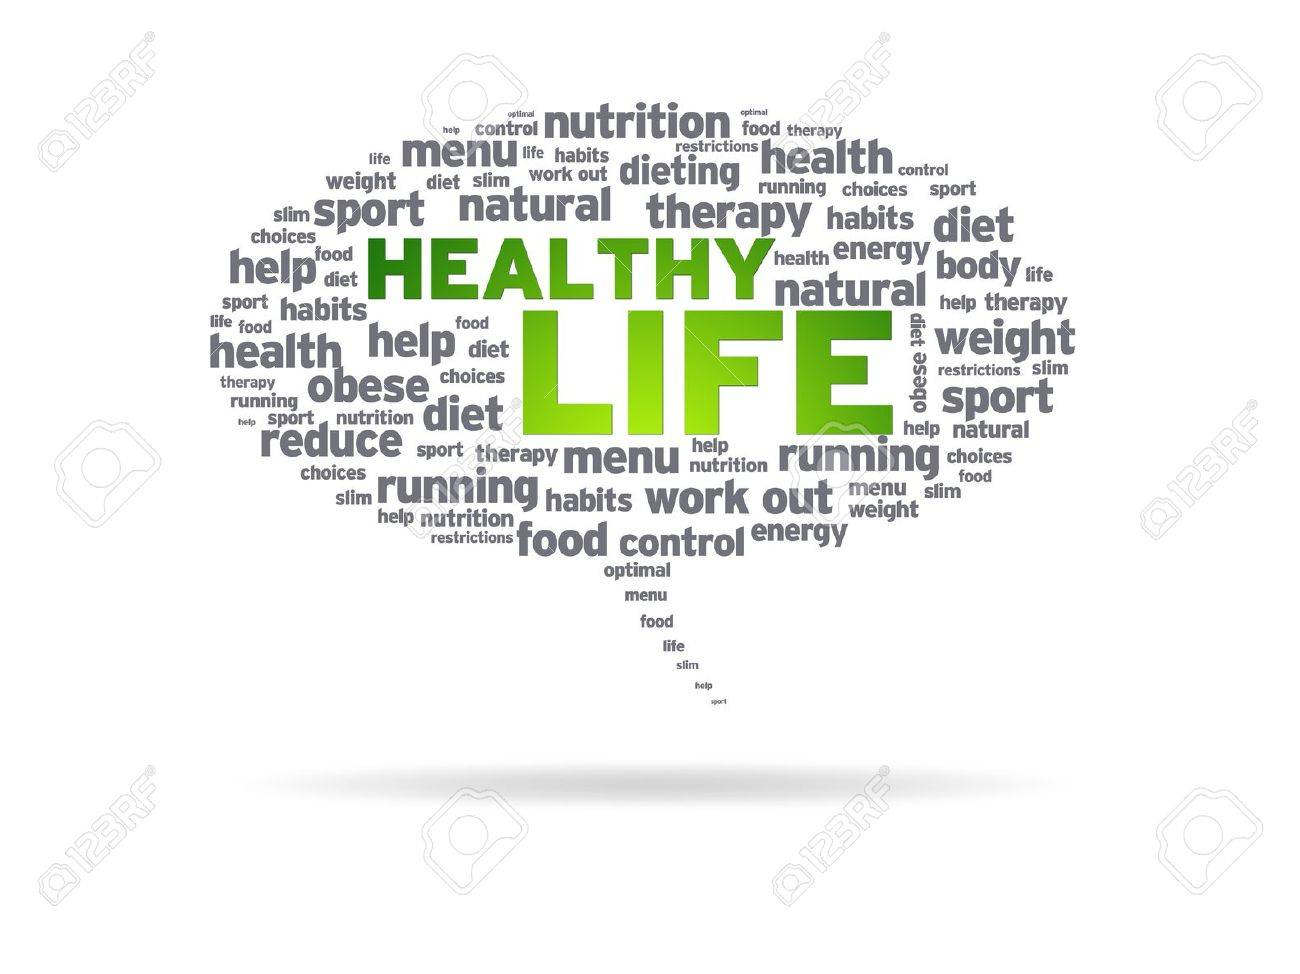 speech on healthy lifestyle 200 words